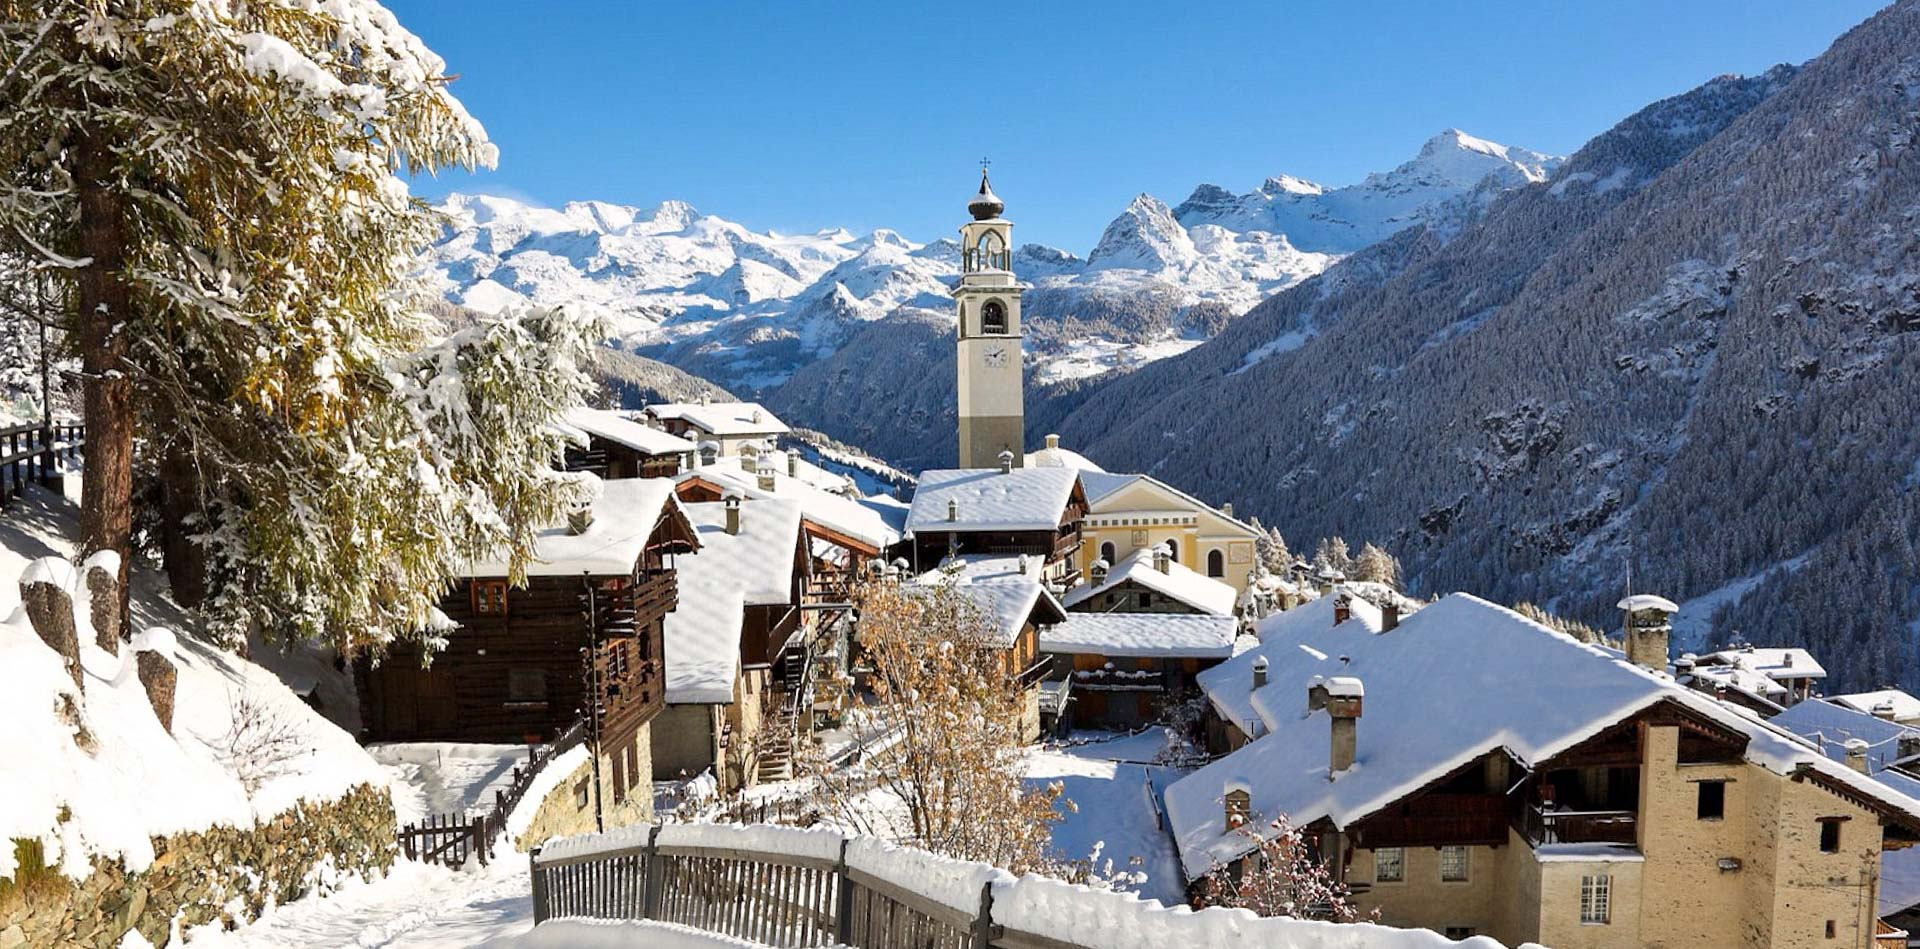 A beautiful snow covered church steeple stands above the snow covered chalets of Champoluc, which sits in front of mountains